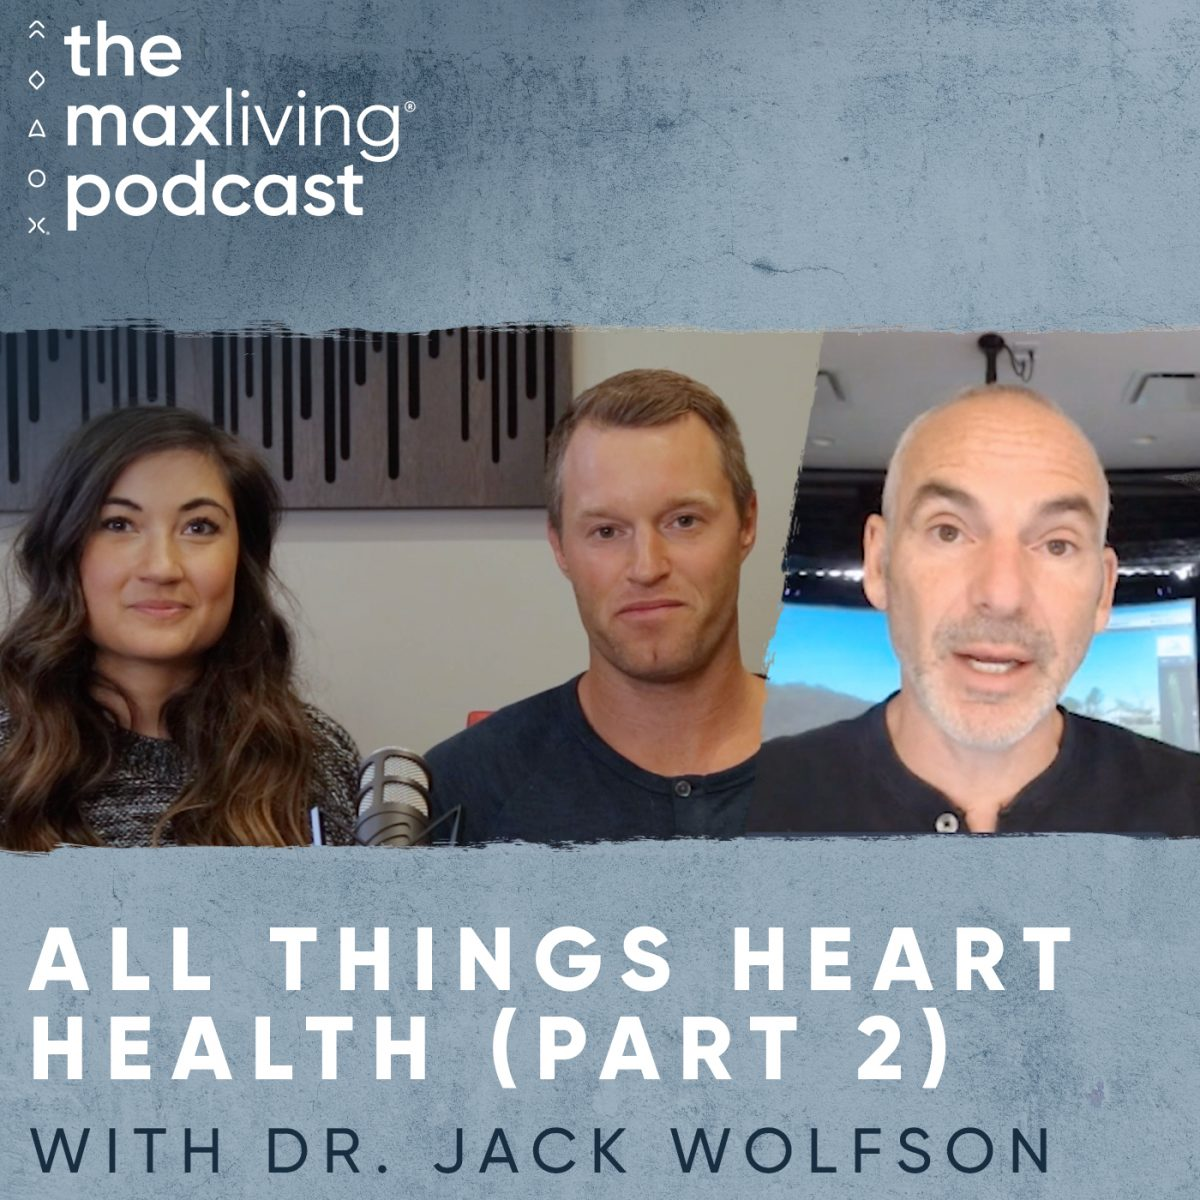 All Things Heart Health (Part 2)